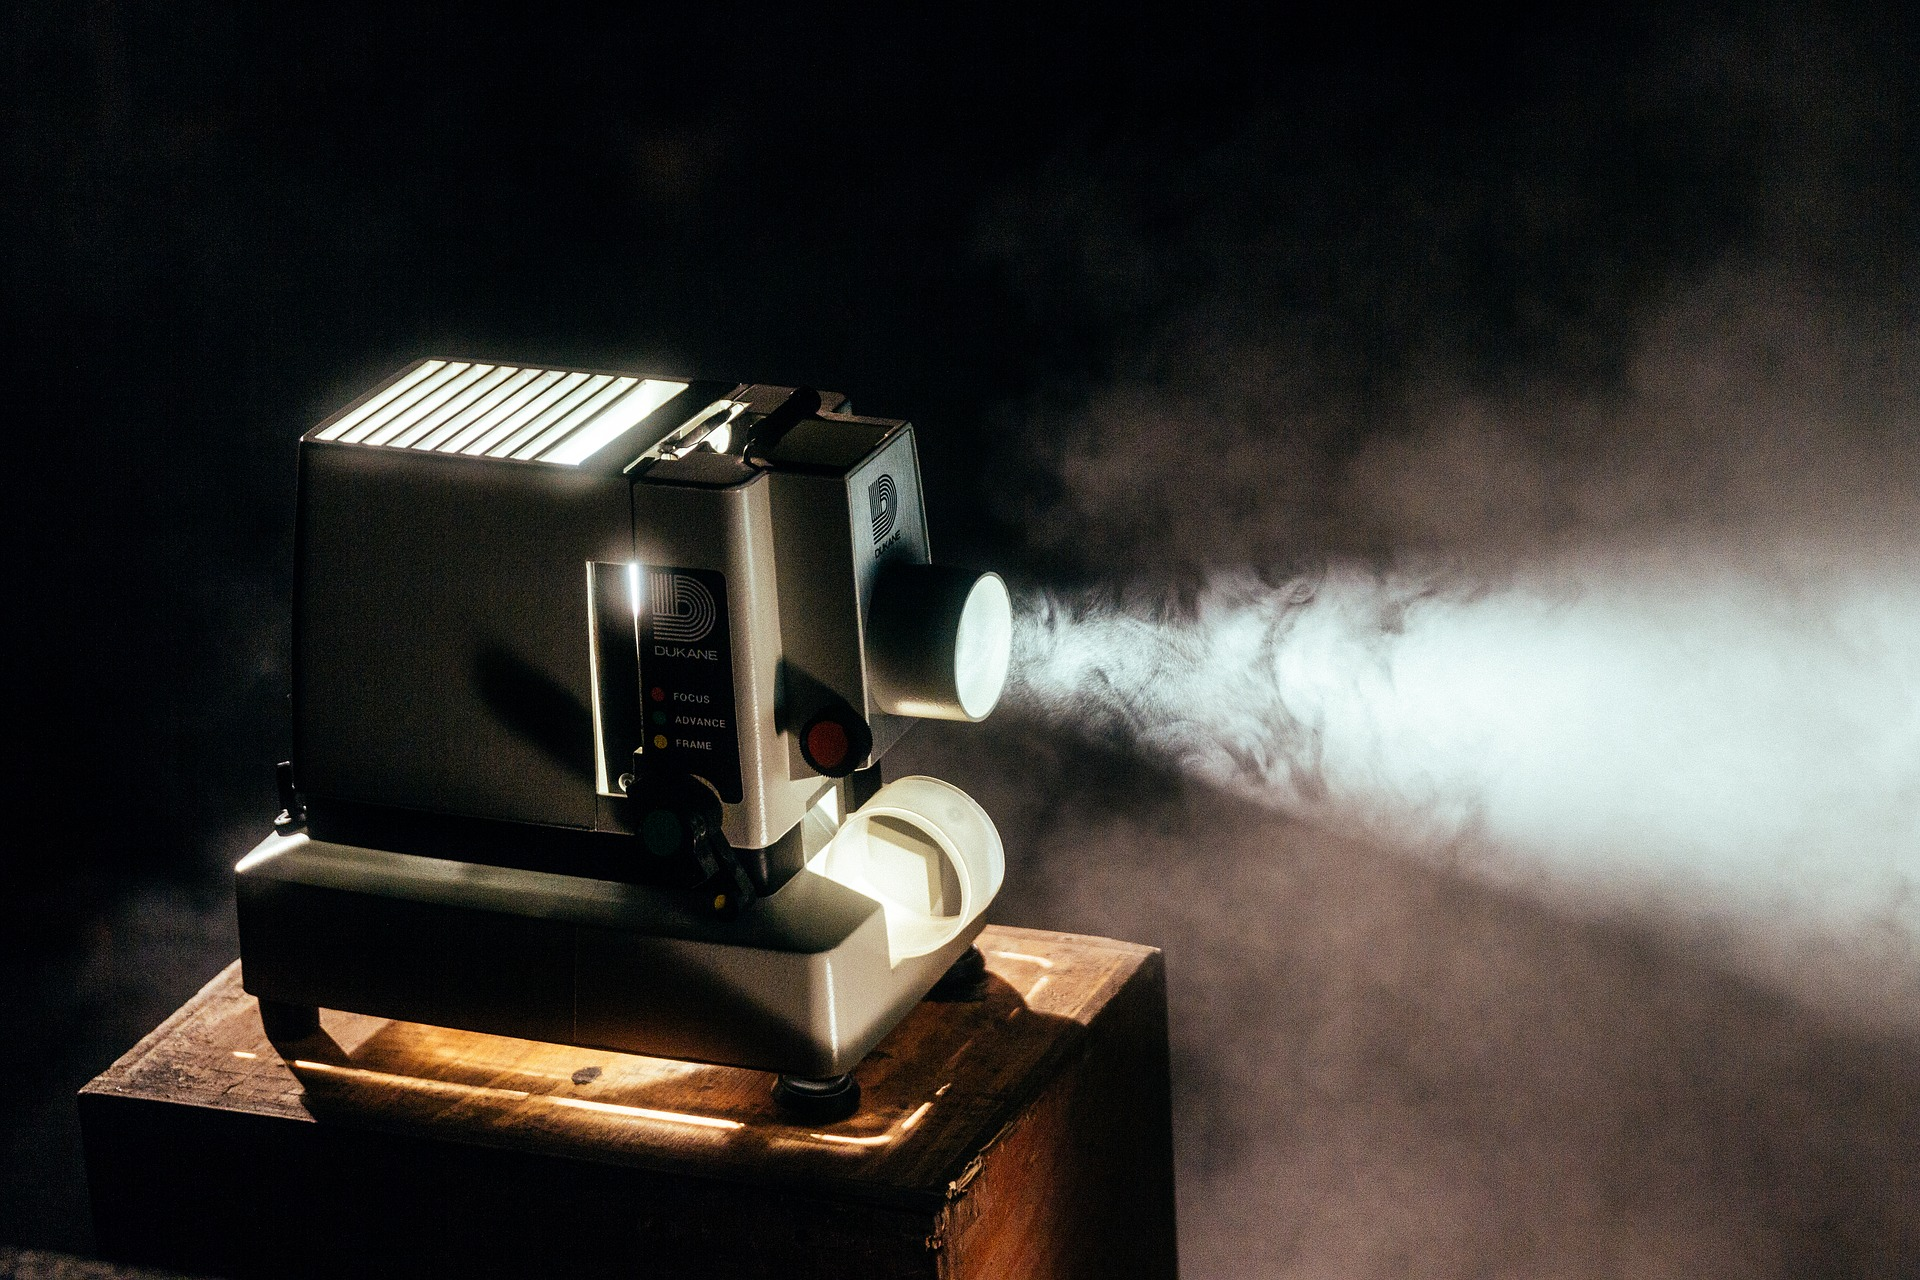 Best Projector: Best Projector Under 200, Reviews & Guide